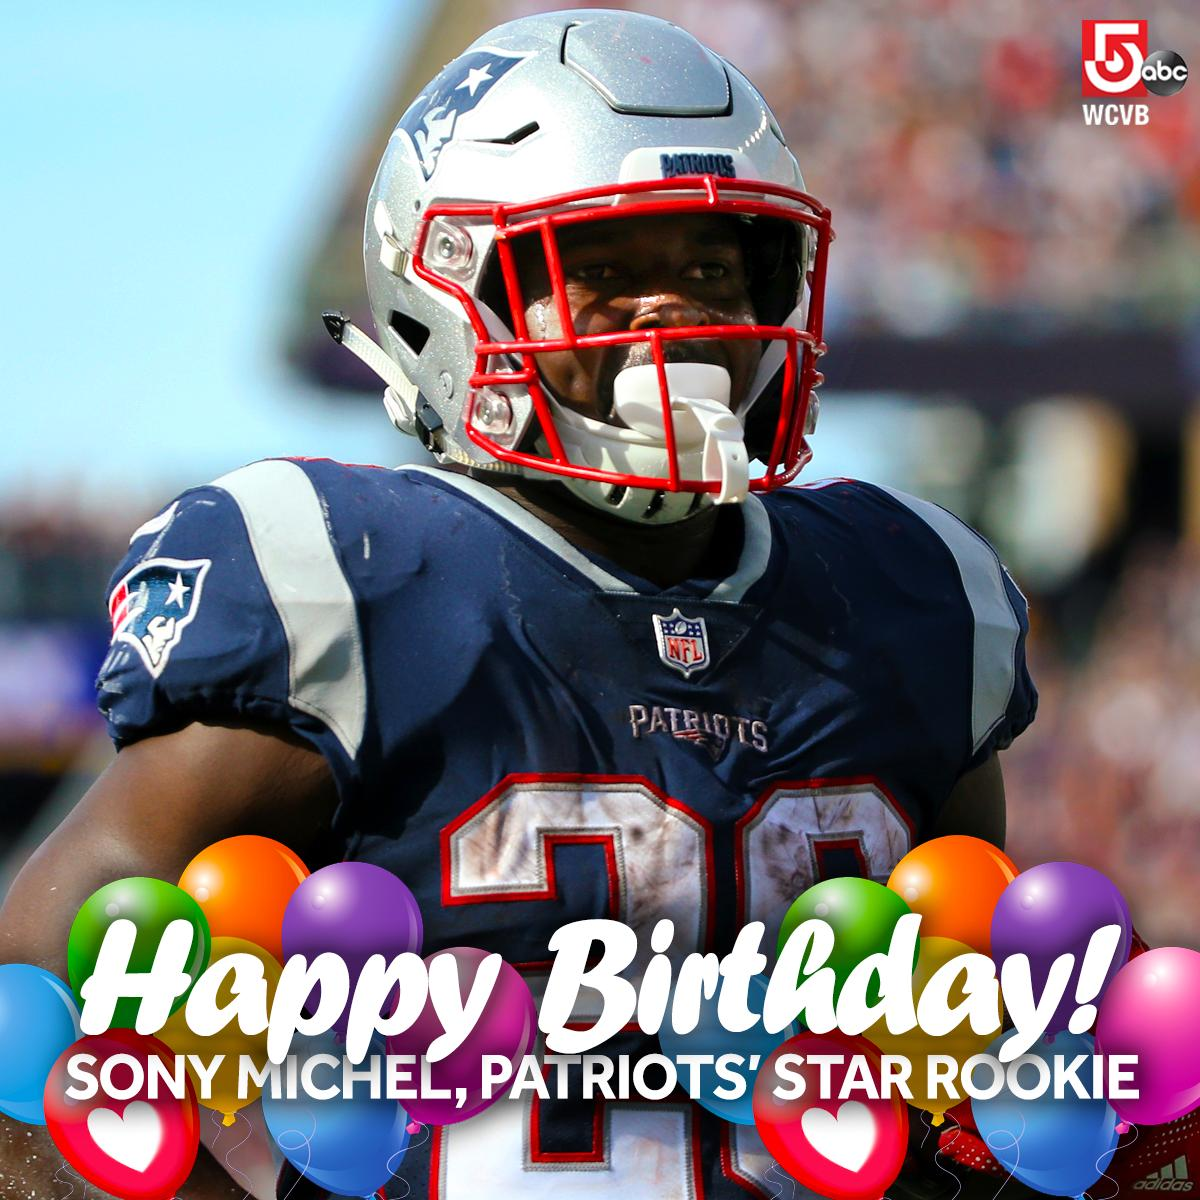 #HappyBirthday to @Flyguy2stackz, the rookie who scored the lone #touchdown in the @patriots #SuperBowl victory!